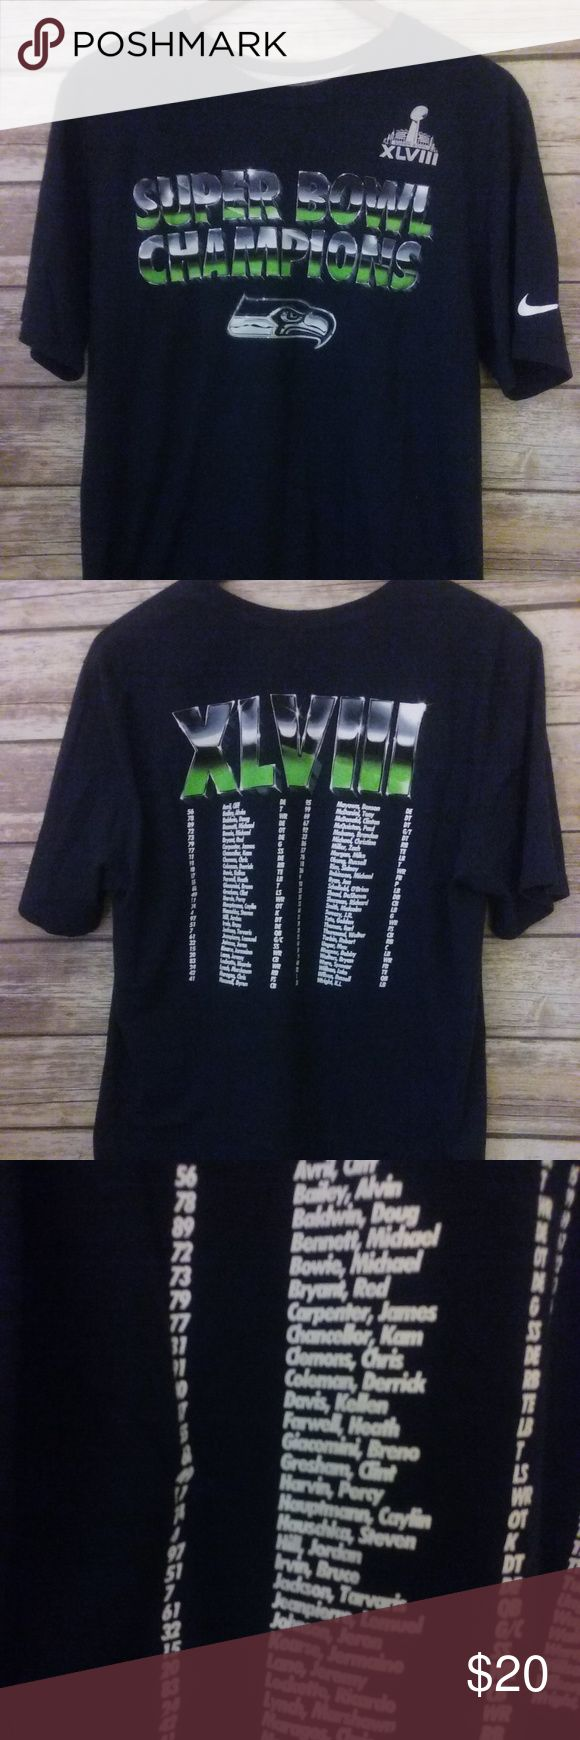 """Seahawks SuperBowl Champions XLVIII T-shirt Size L Unique Nike Men's Seattle Seahawks Super Bowl Champions XLVIII T-shirt Size Large Regular Fit, has Super Bowl Champions on front, the team roster on back and Nike logo on one sleeve.  Measures approximately:  28"""" long from back collar 20"""" underarm to underarm  Please measure against current items in your closet :) Nike Shirts Tees - Short Sleeve"""